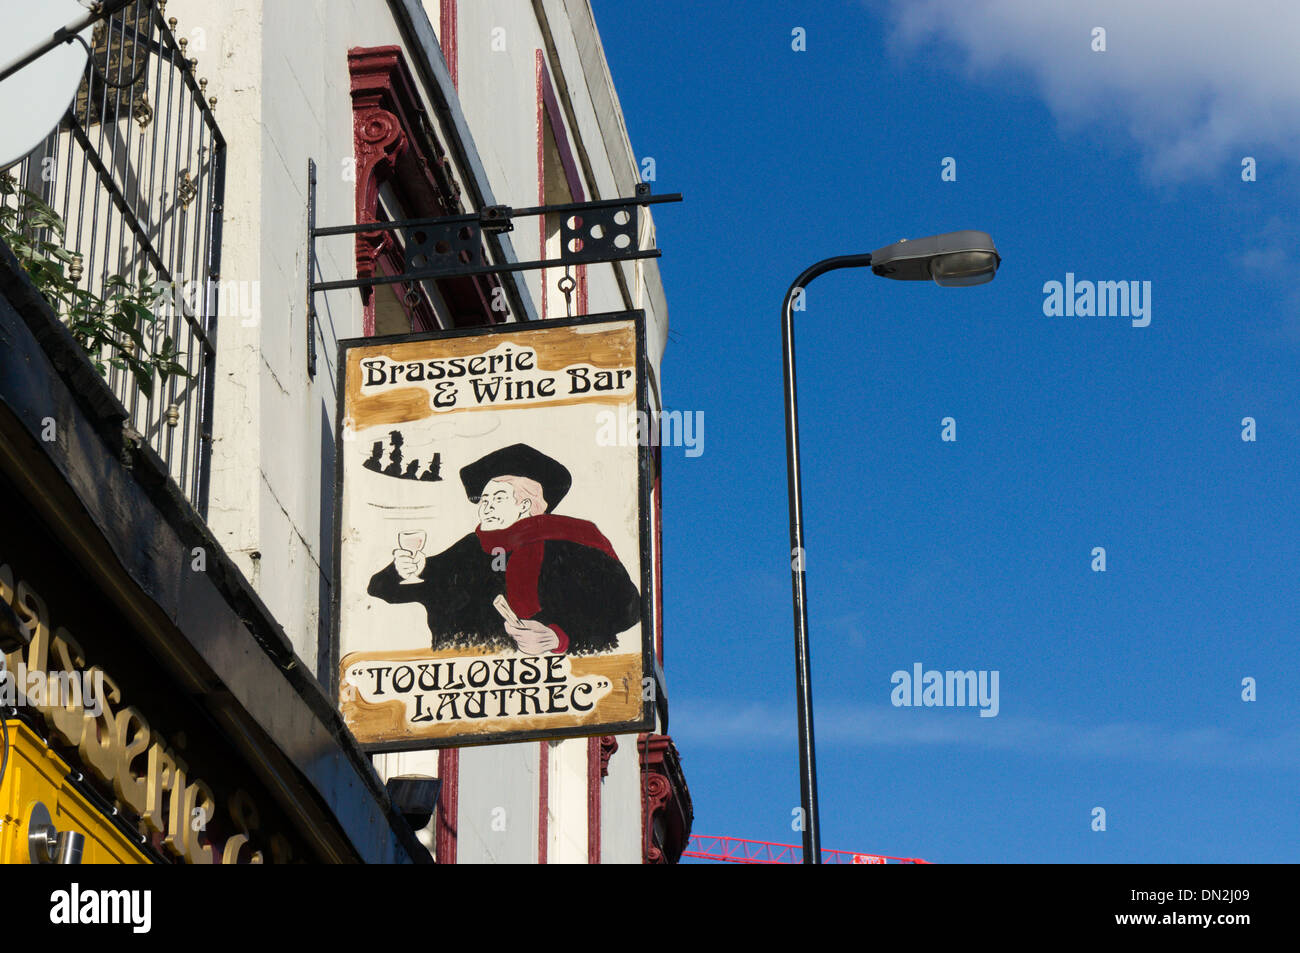 Sign for the Toulouse Lautrec Brasserie & Wine Bar in Newington Butts near Elephant and Castle, South London. - Stock Image